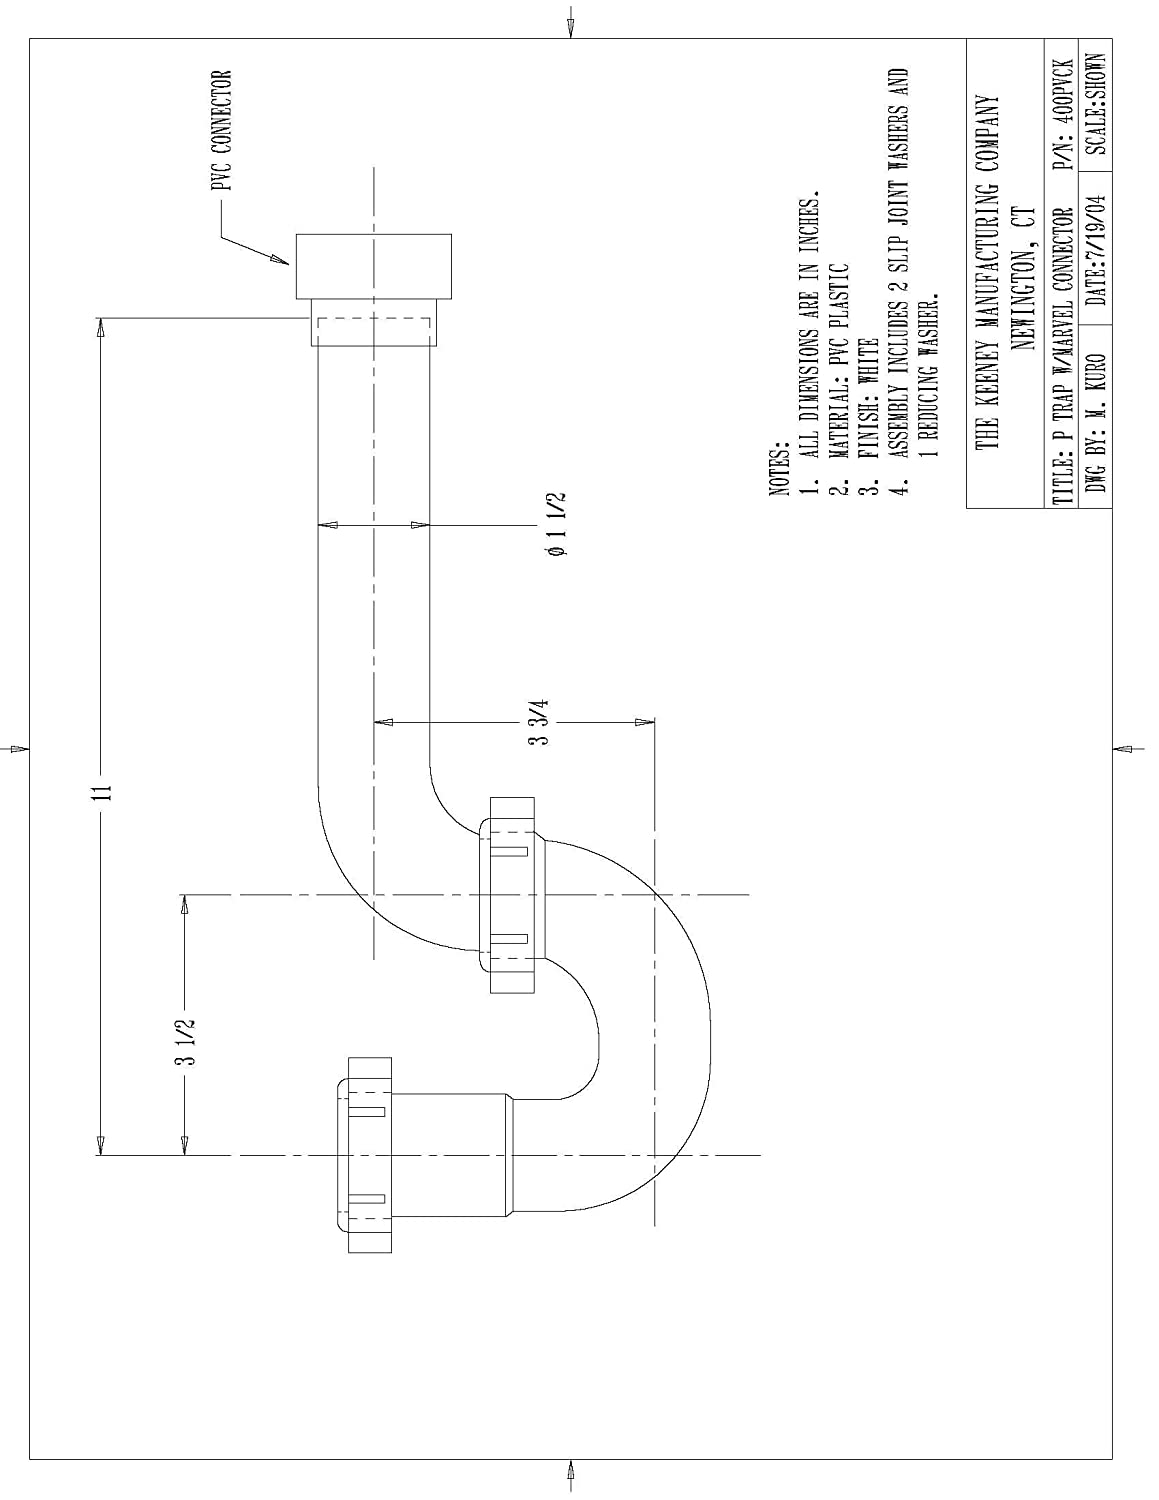 Gm Tachometer Wiring Great Design Of Diagram Hei Distributor Tach Alternator Auto Wiper Switch